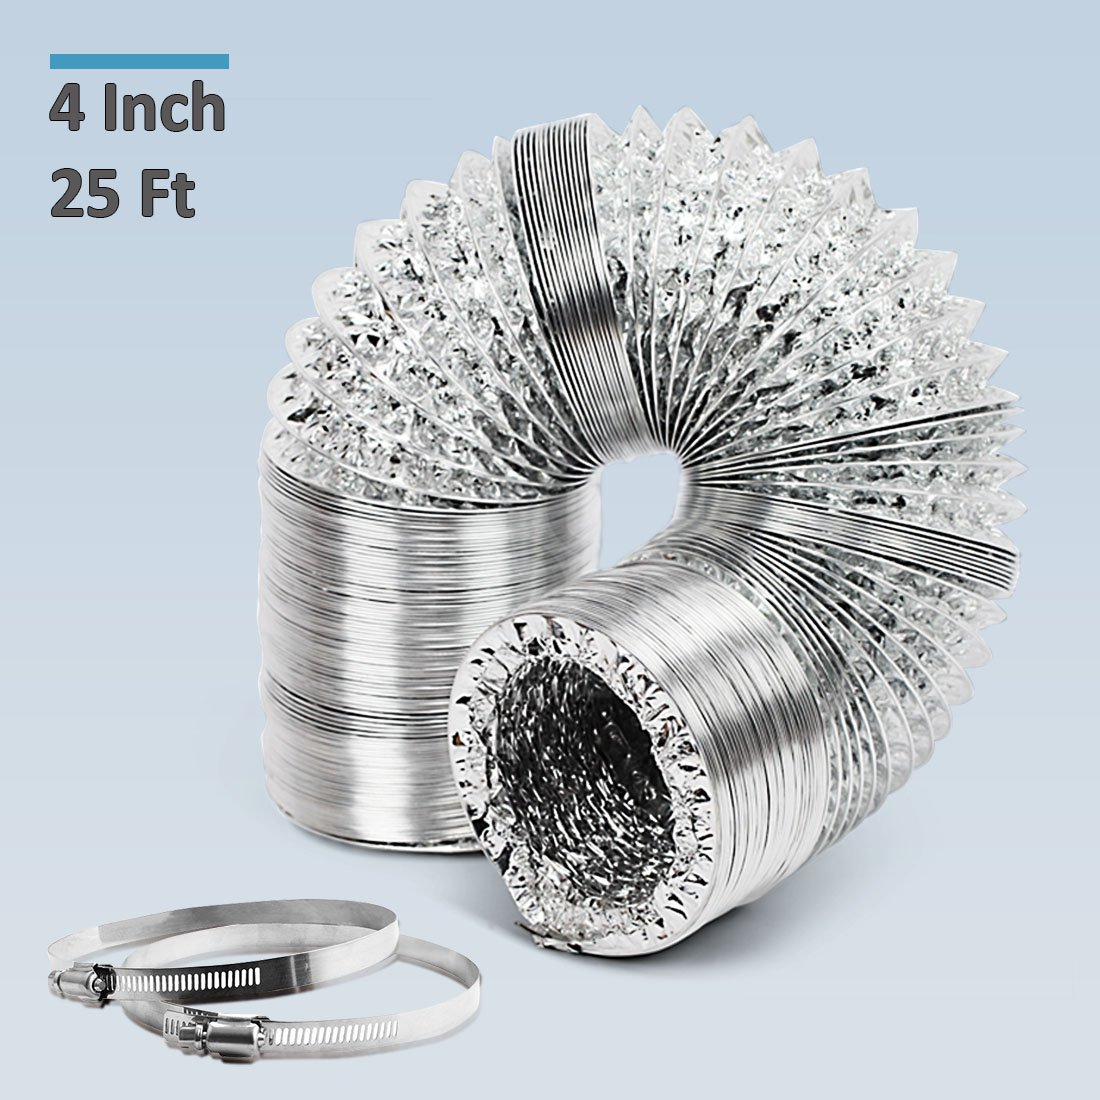 GROWNEER 4 Inch 25 Ft Aluminum Air Ducting with 2 Stainless Steel Clamps, Non-Insulated Flexible Air Duct Hose for HVAC Ventilation